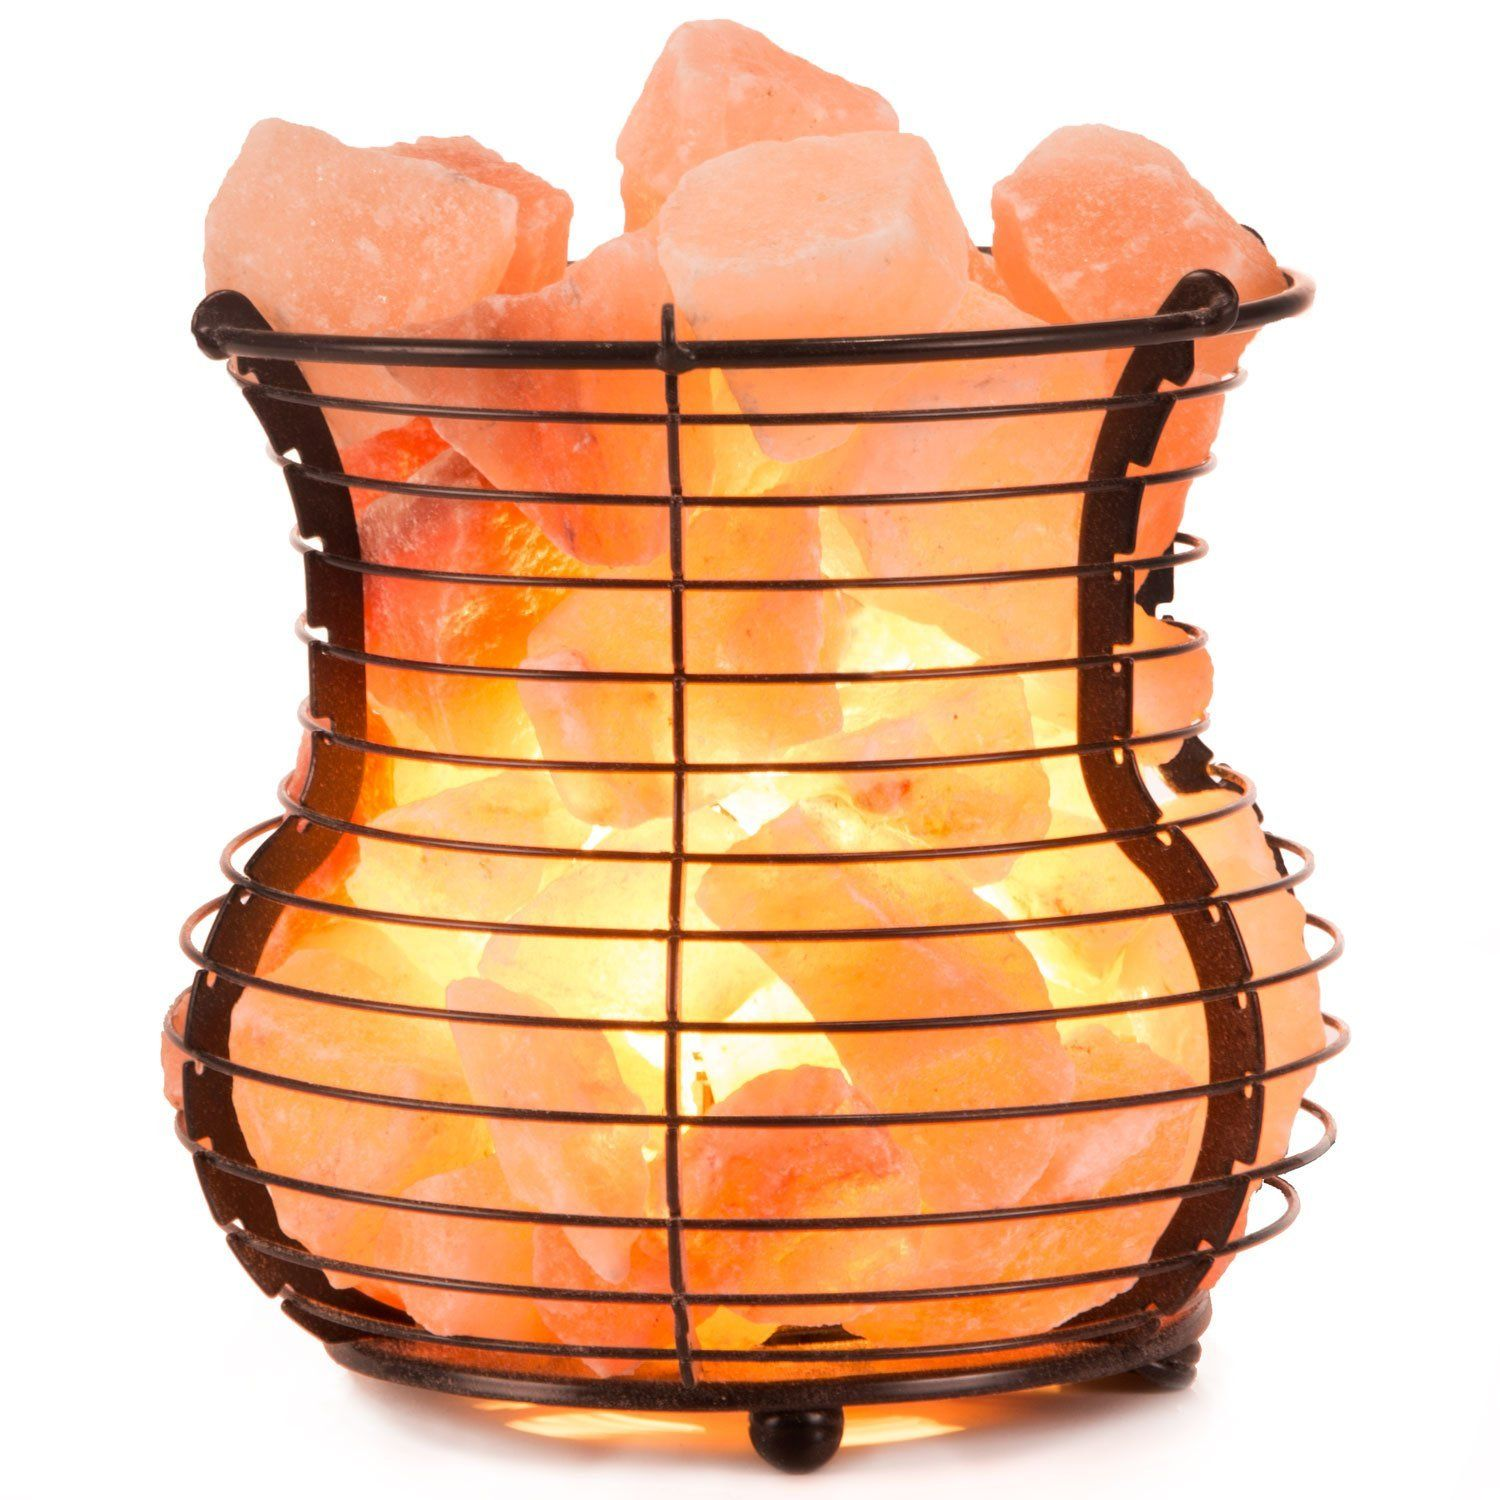 Crystal Allies Gallery Natural Himalayan Salt Wire Mesh Basket Vase Lamp With Cord Light Bulb Authe Pink Salt Lamp Salt Lamp Pink Himalayan Salt Lamp